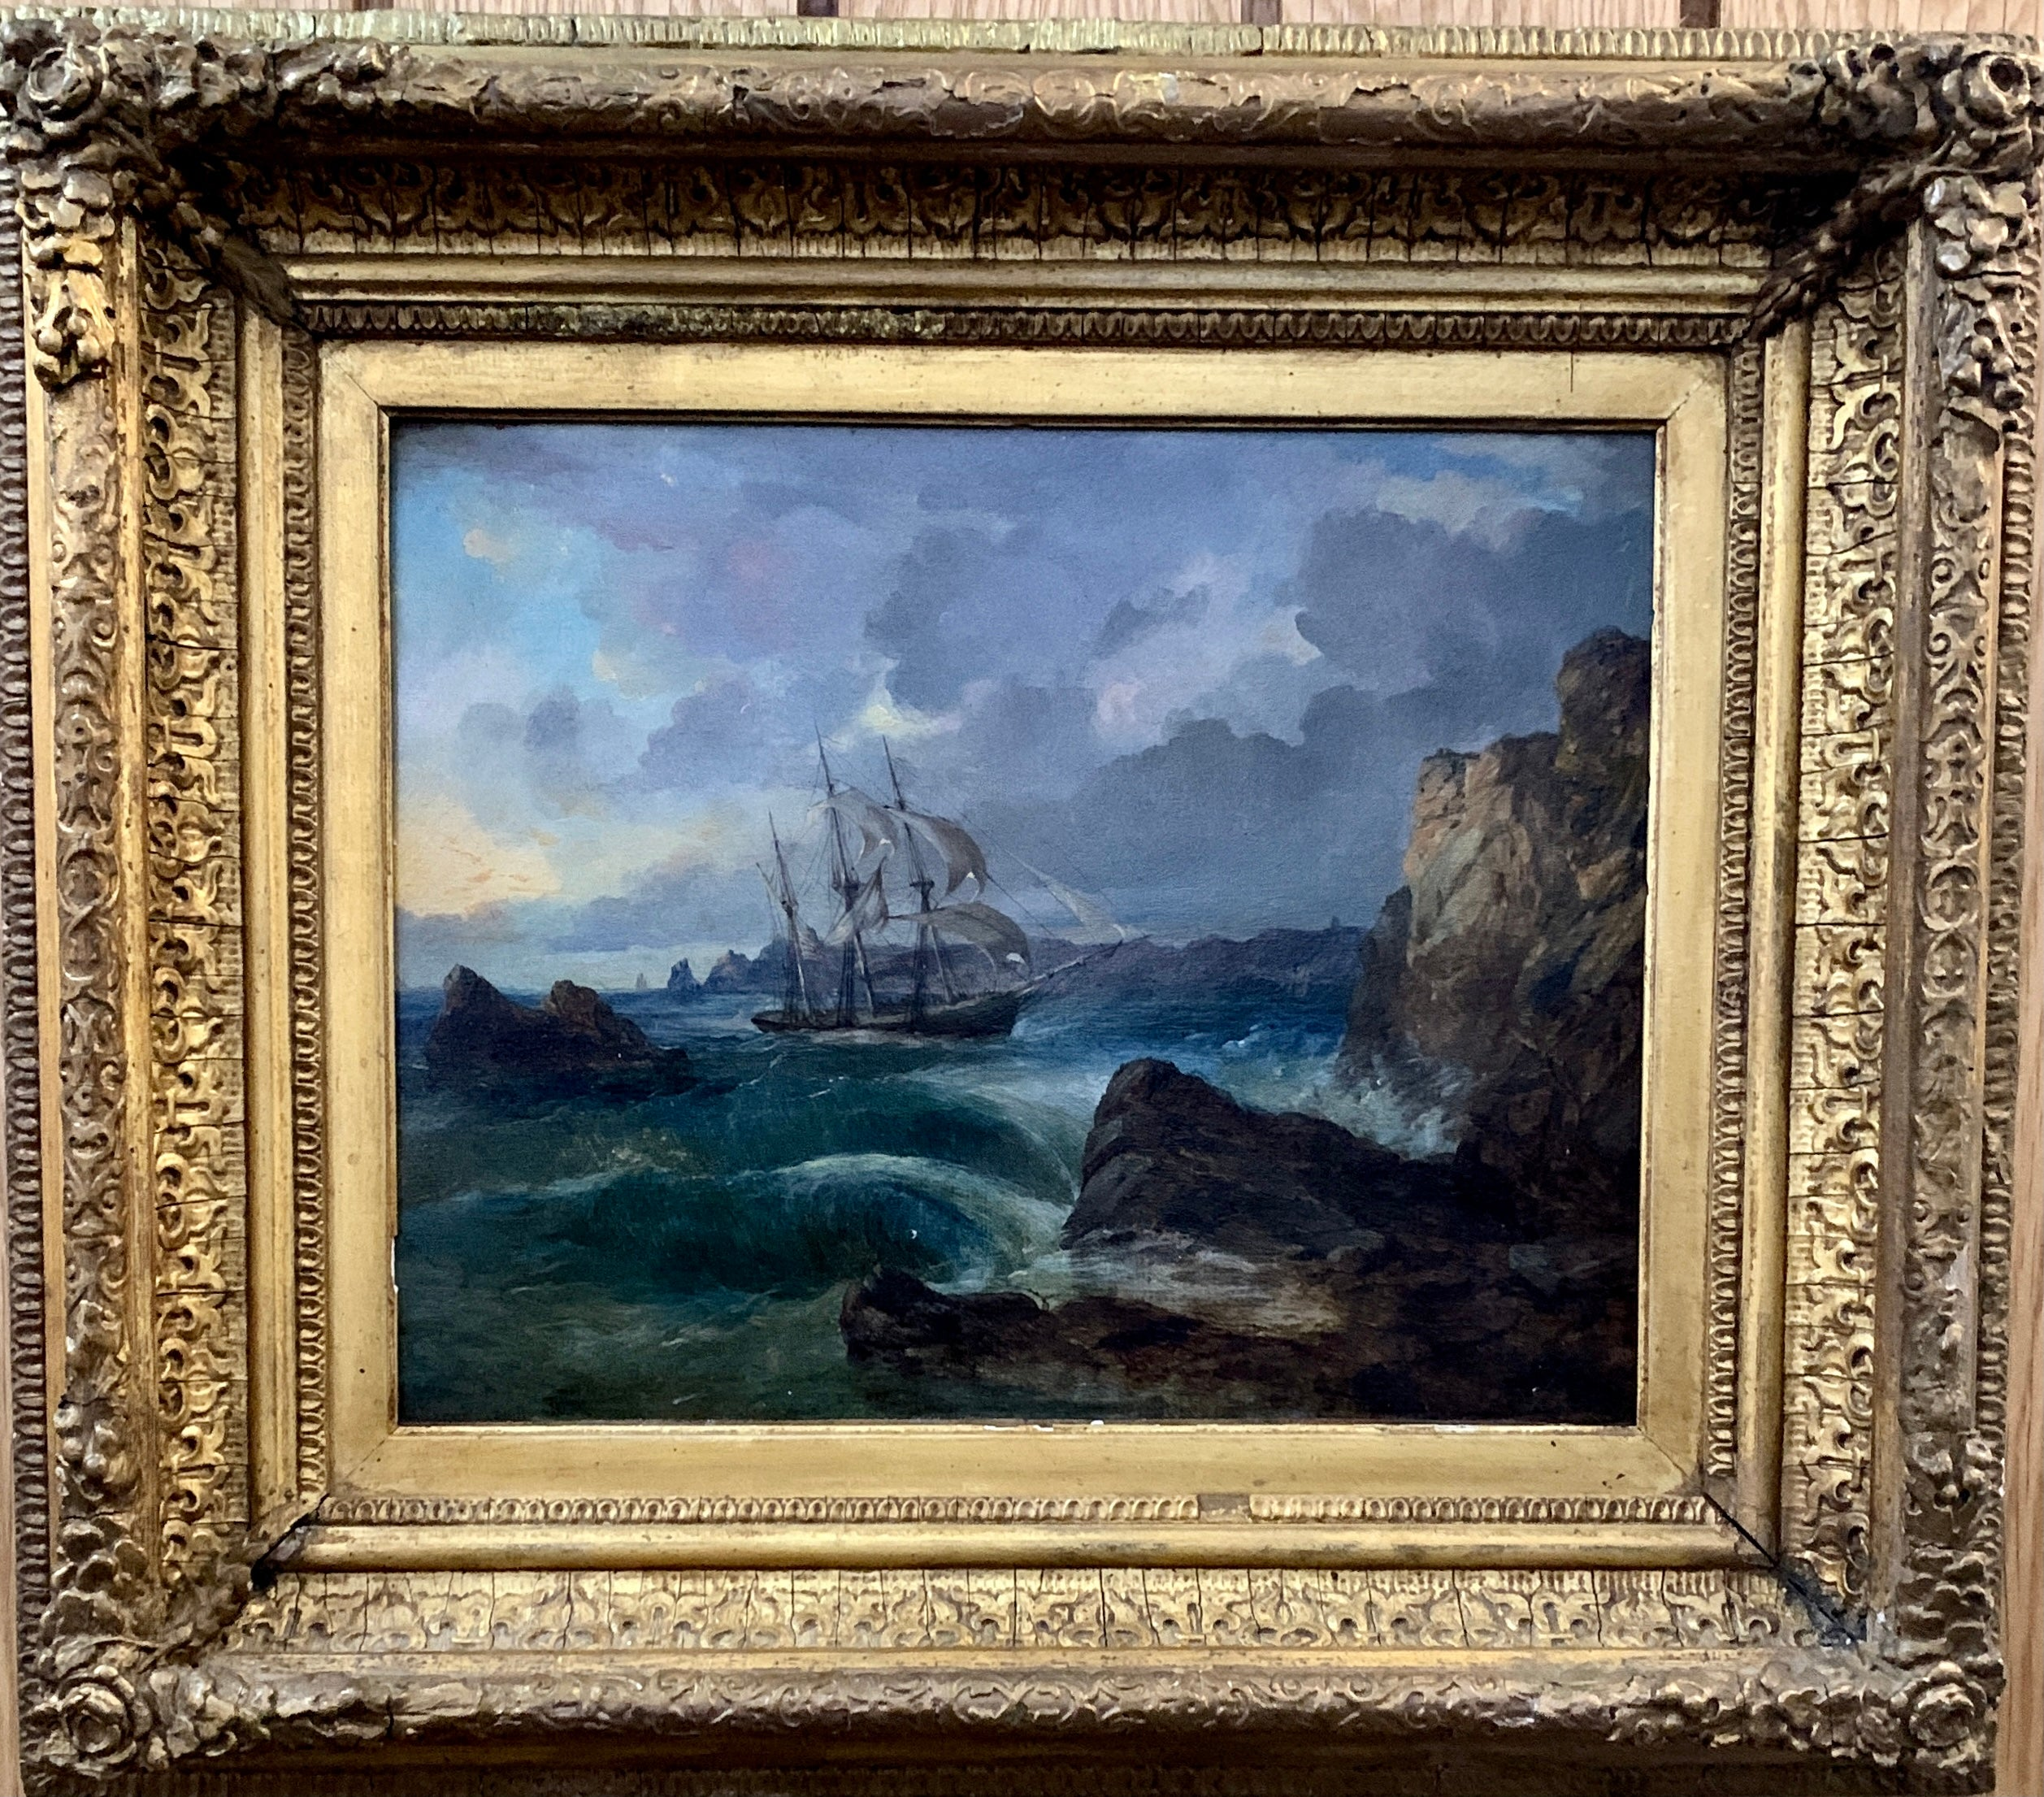 British 19th century Victorian boat off the coast of England in rough seas